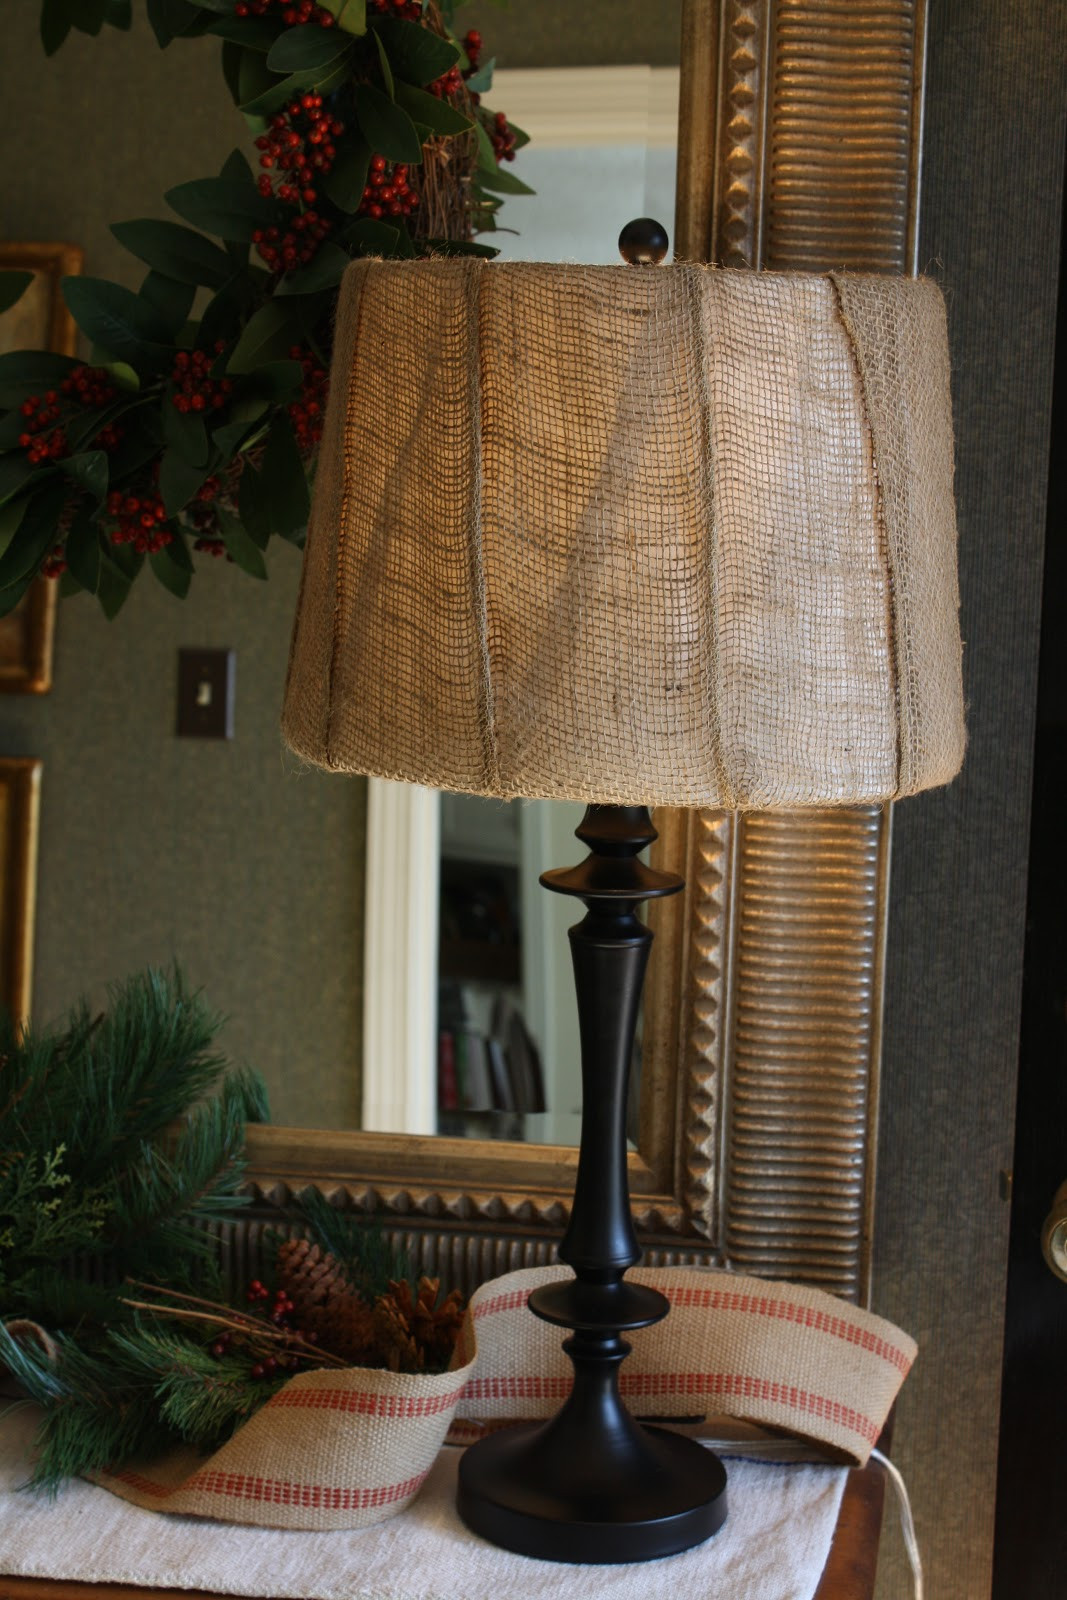 Diy Lampshade  Coastal Charm DIY Lampshade and Christmas Vignette